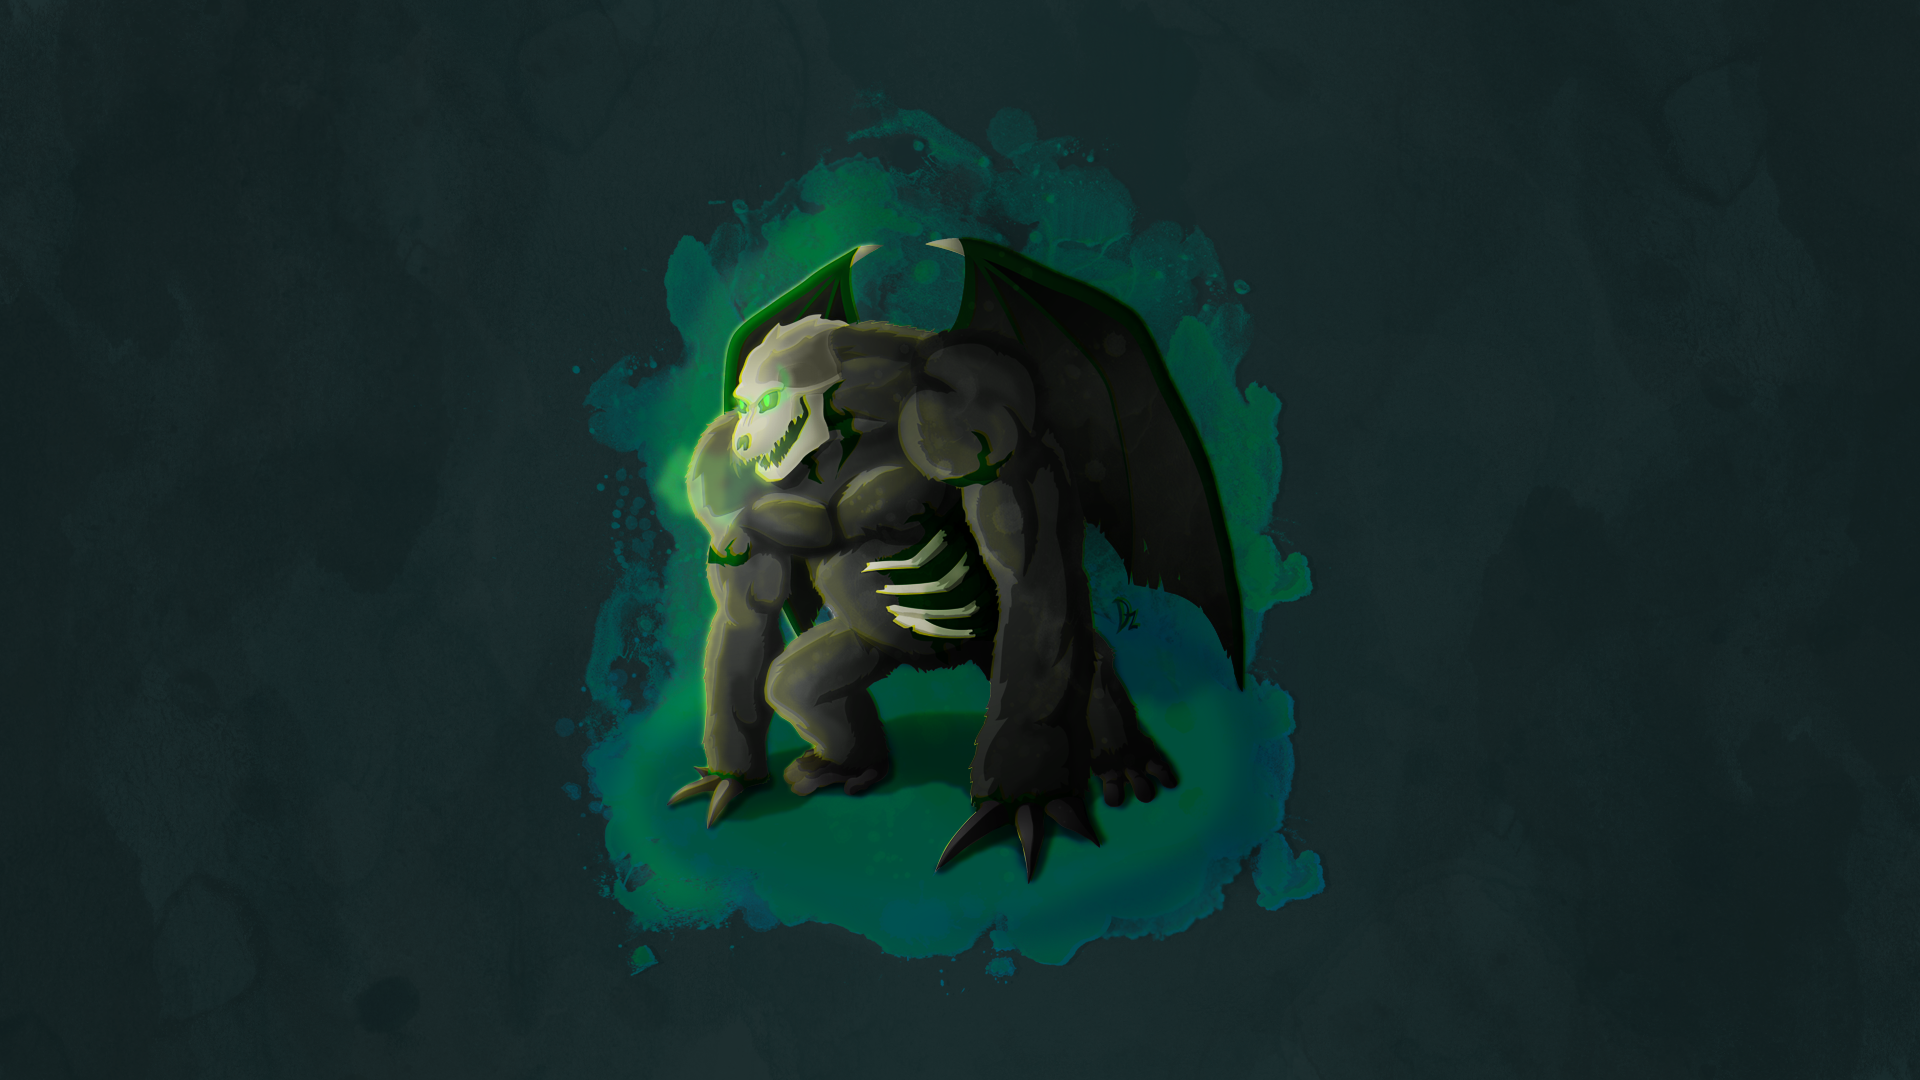 Demonic Gorilla Wallpaper Osrs By Deathlezz On Deviantart Some optimization work has gone into this release which should reduce the frequency of the pauses. demonic gorilla wallpaper osrs by